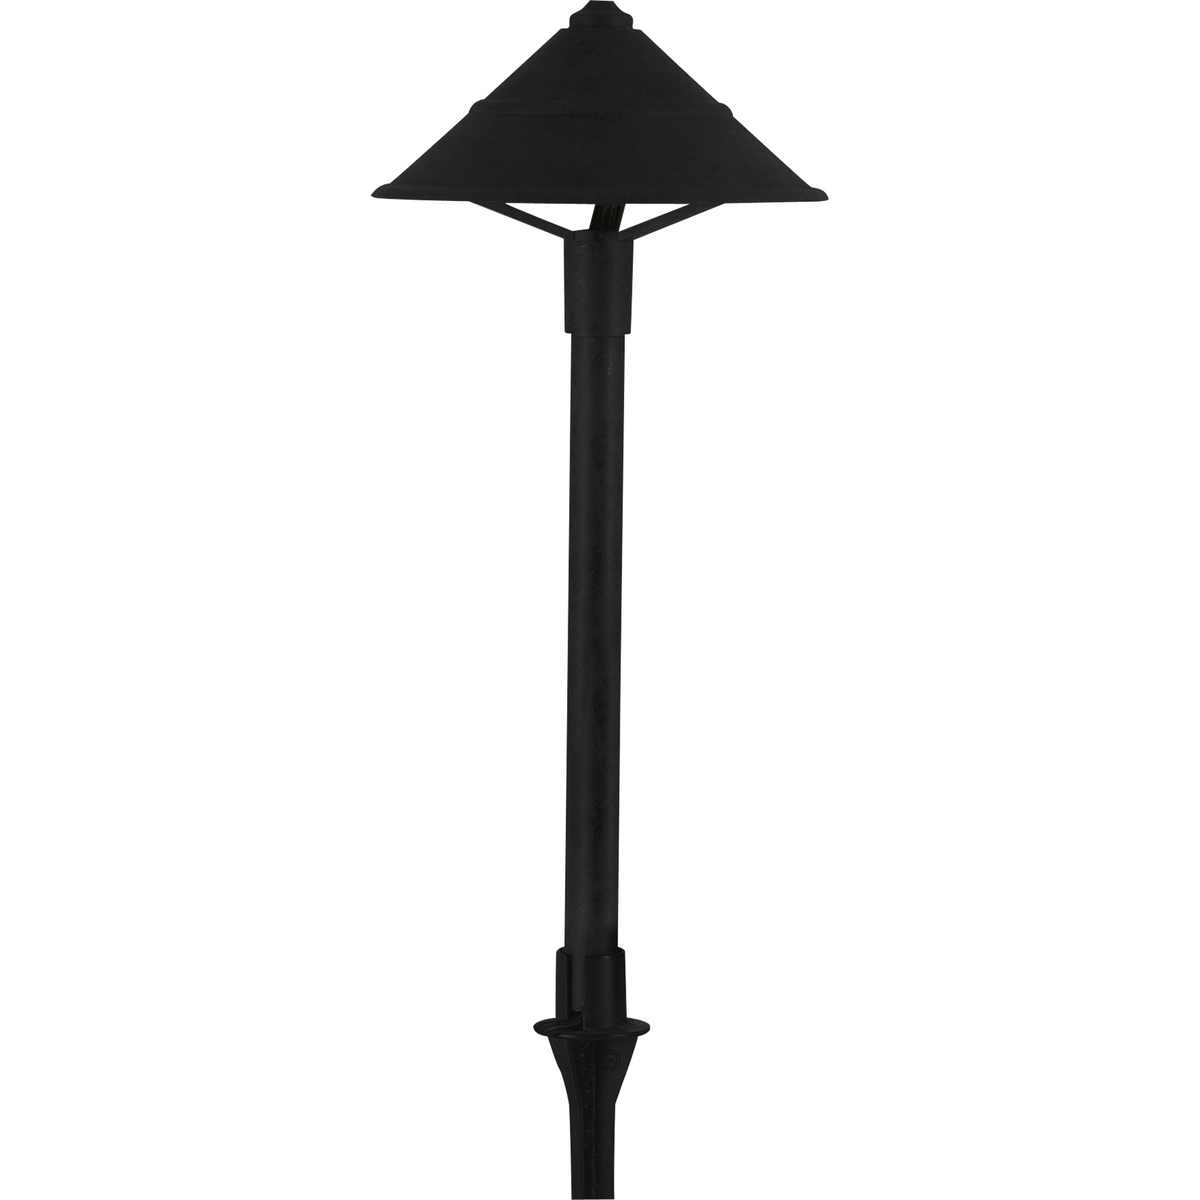 PROP5297-31 P5297-31 1.5W LED PATH LIGHT;Progress Lighting® Progress LED P5297-31 Commodity/Utilitarian Landscape Path Light, (1) LED Lamp, 12 VAC, Black Powder Coated/Painted Housing